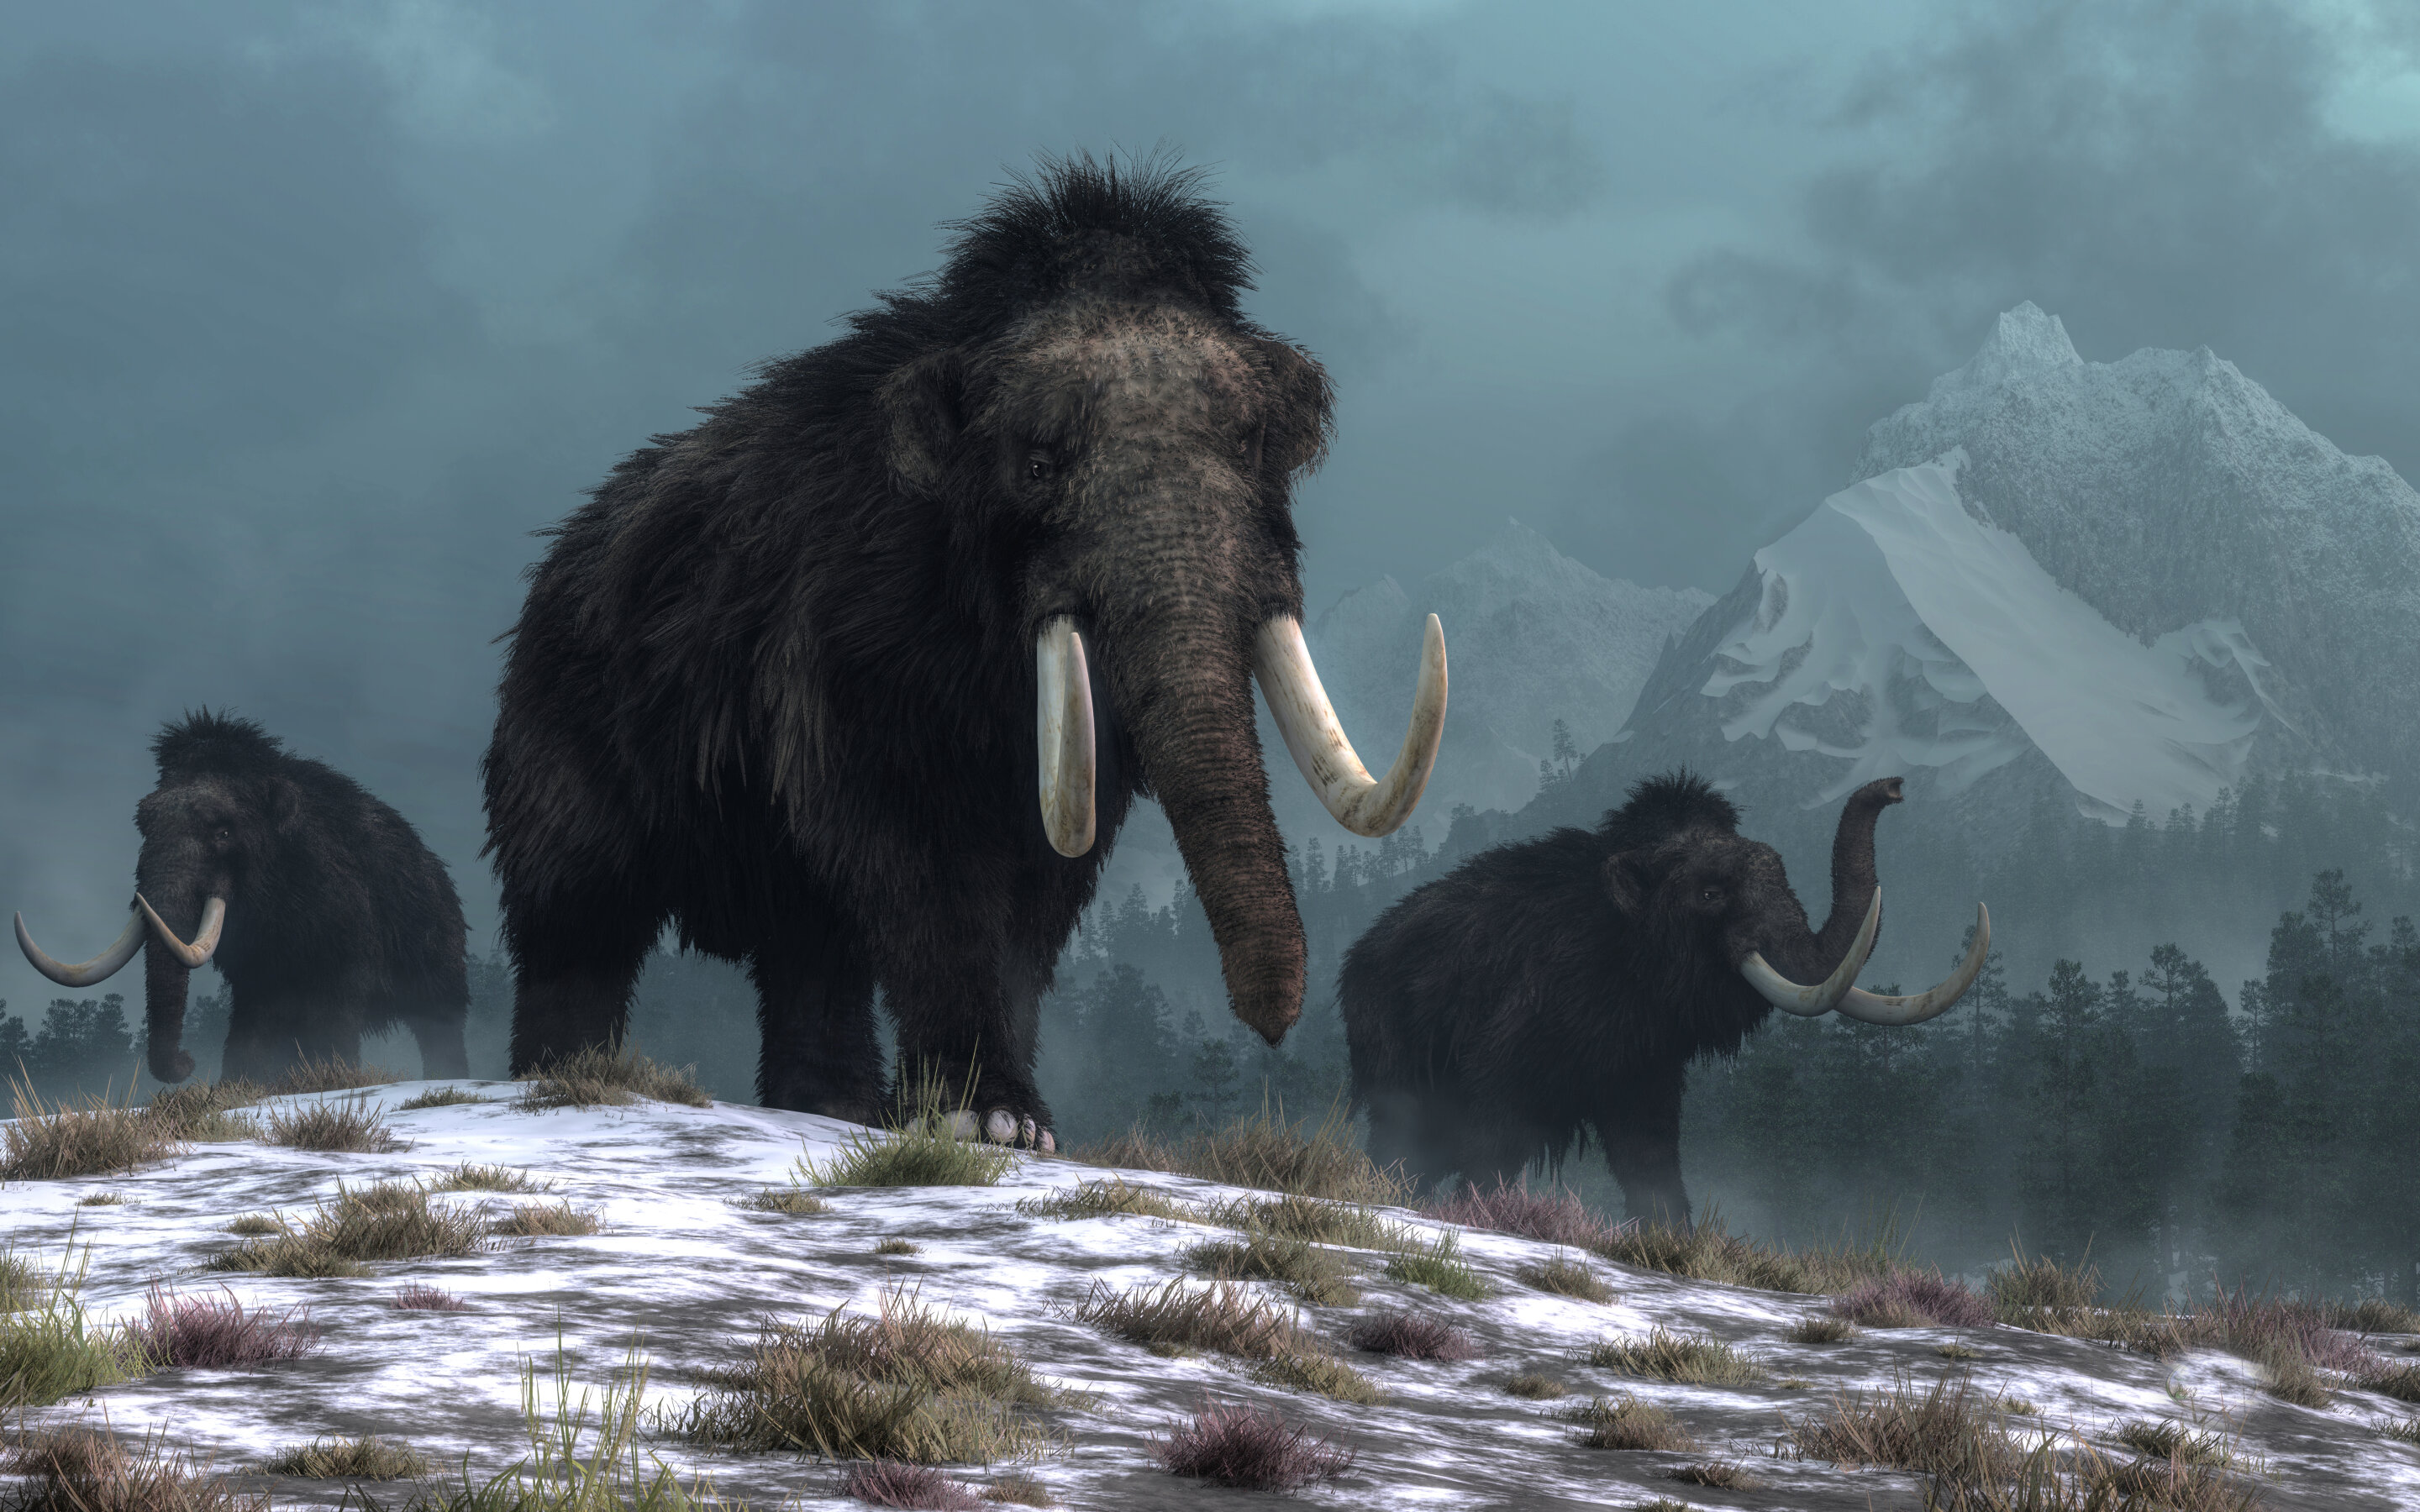 Humans did not cause woolly mammoths to go extinct—climate change did: study - Phys.org